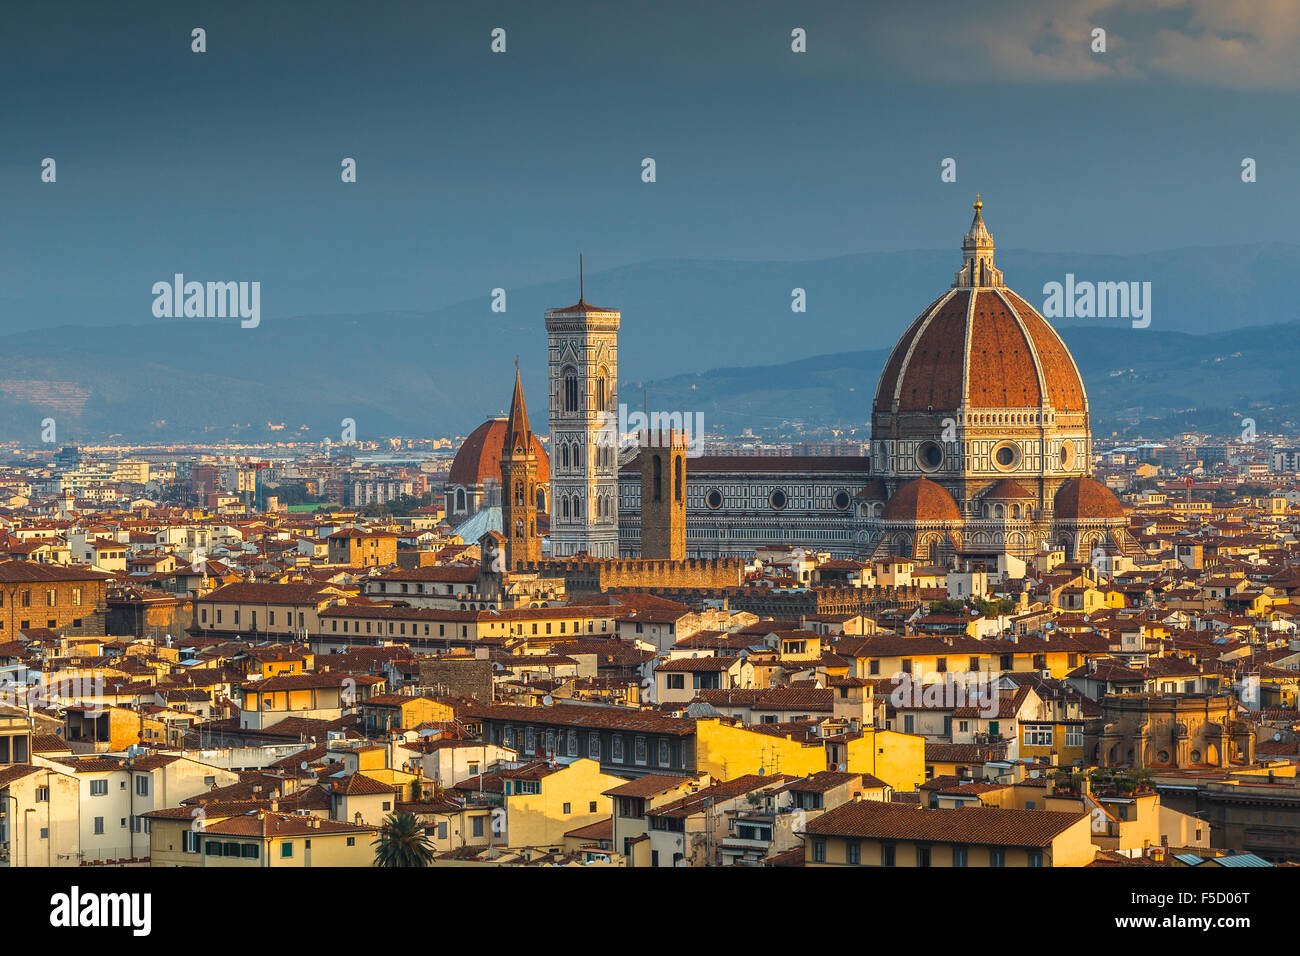 Santa María del Fiore Cathedral at sunrise from Piazzale Michelangelo, Florence, Tuscany, Italy. - Stock Image